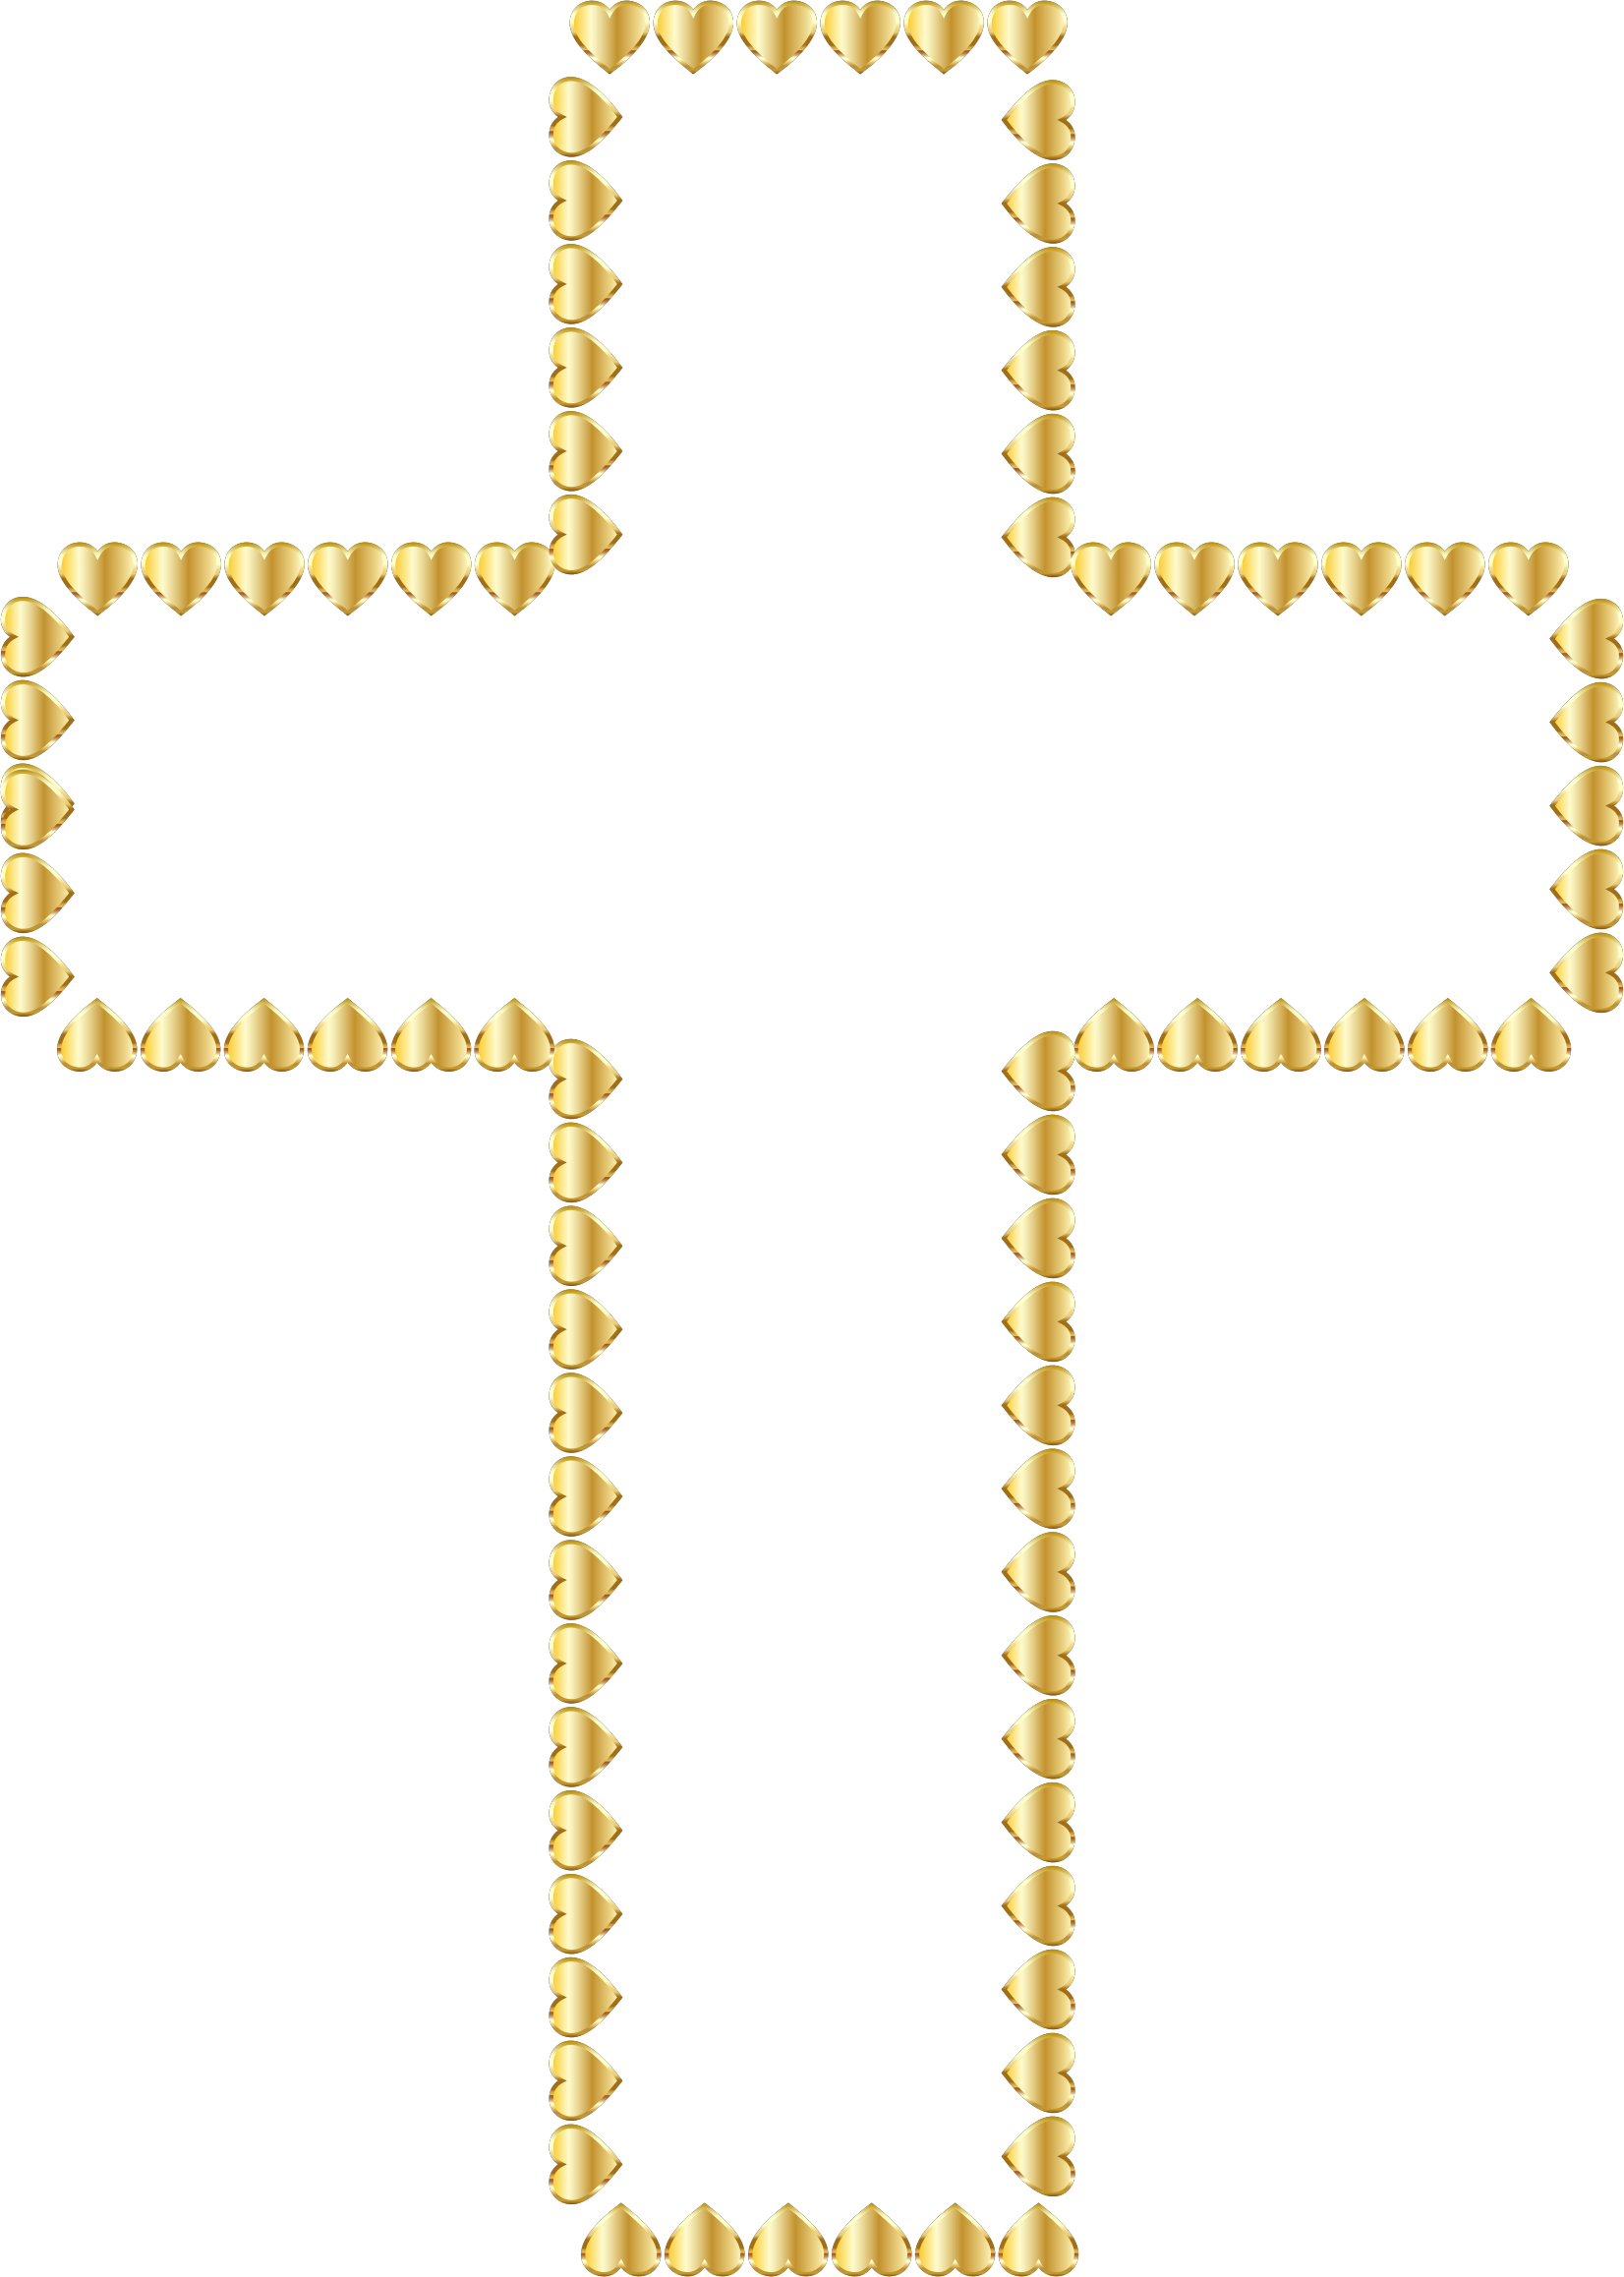 Antique gold christian cross clipart png svg black and white stock Golden Cross Hearts No Background by GDJ | komunia | Pinterest ... svg black and white stock